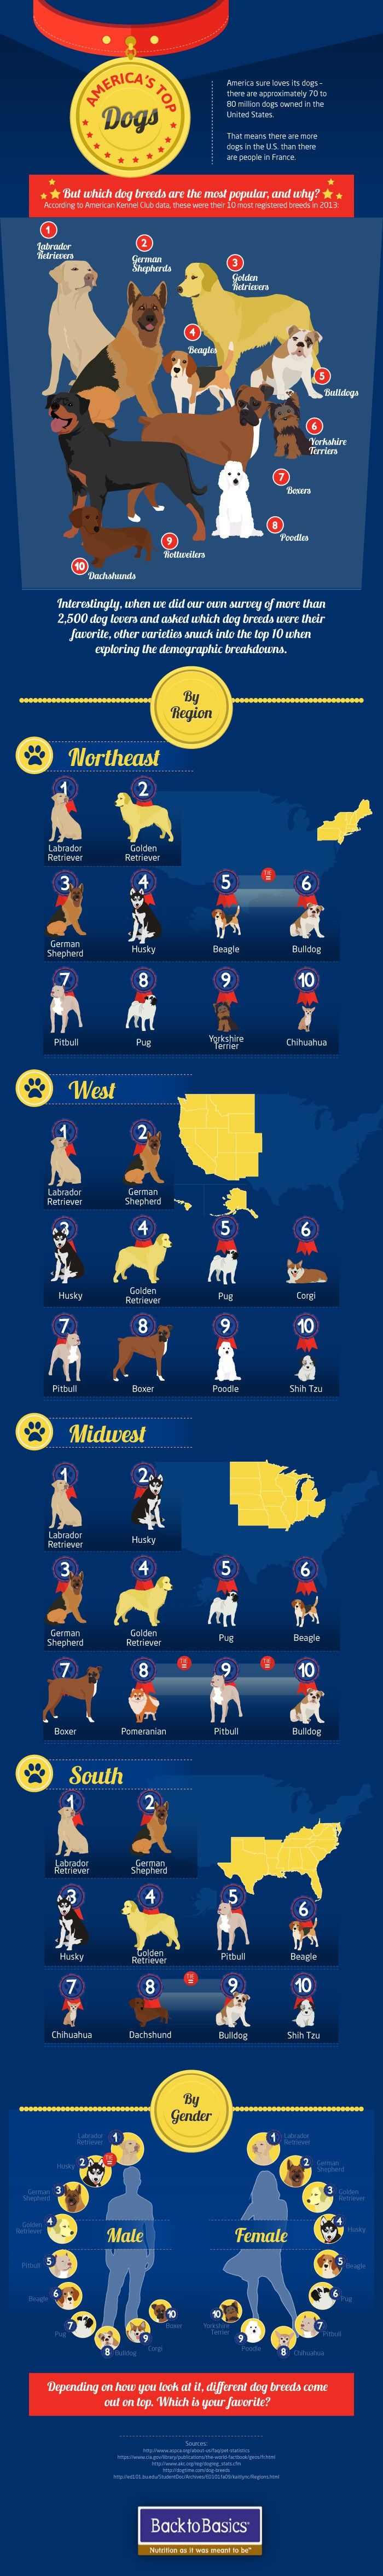 Top 10 dog breeds in the U.S. and why we love them. #dogs #dogbreeds #infographics @mashable